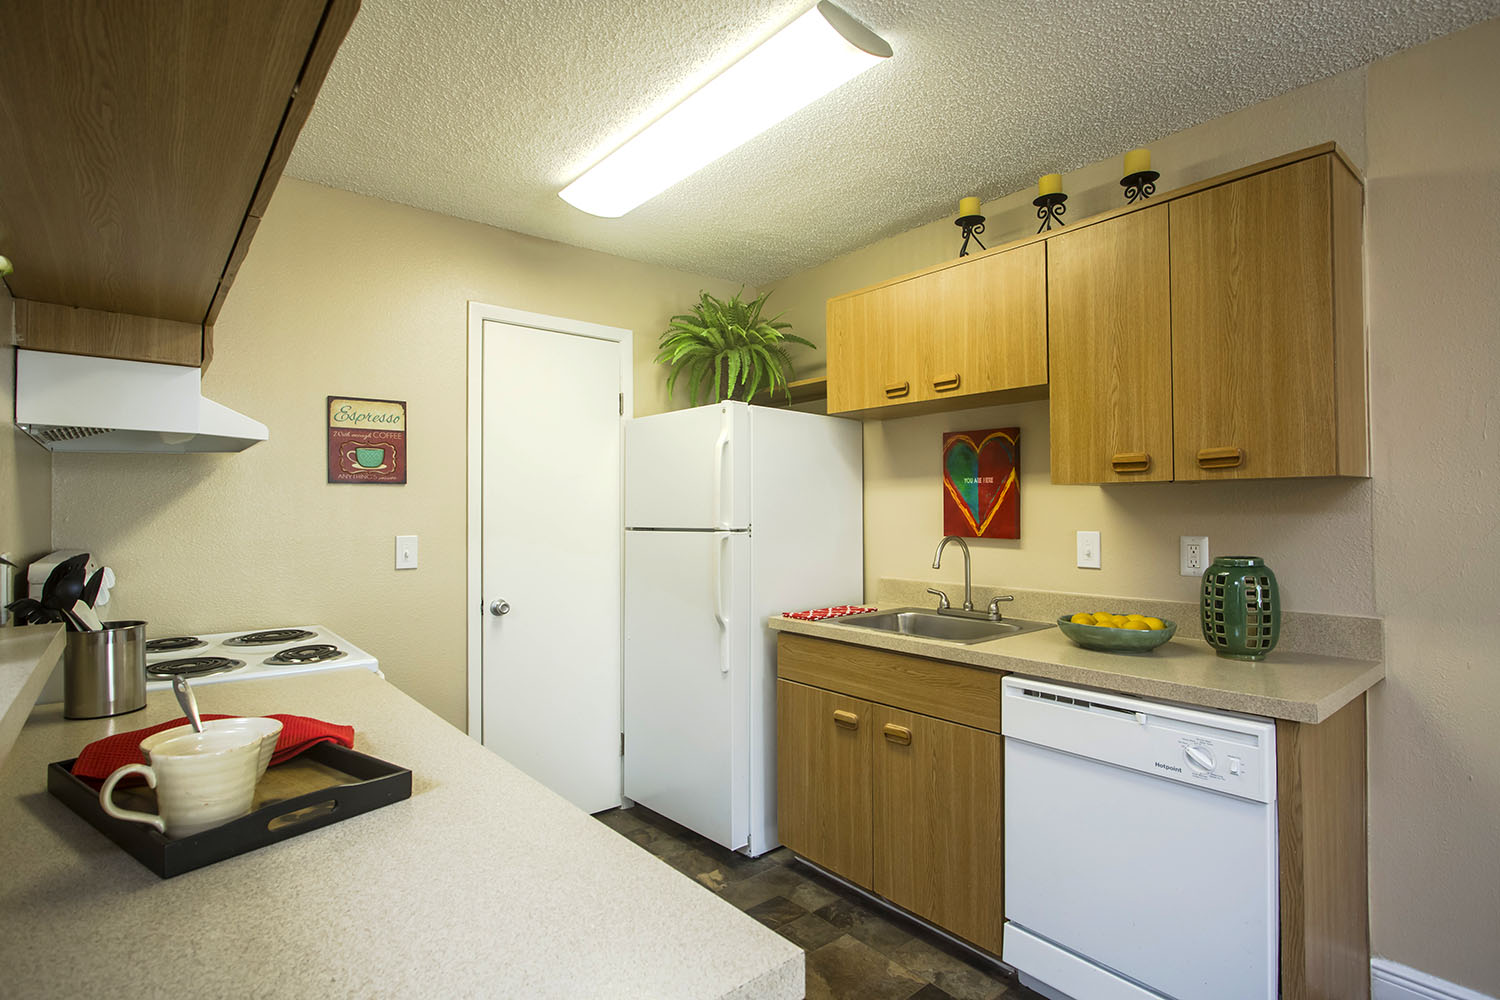 tampa-port_richey-apartment-one-bedroom-rental-two-kitchen.jpg